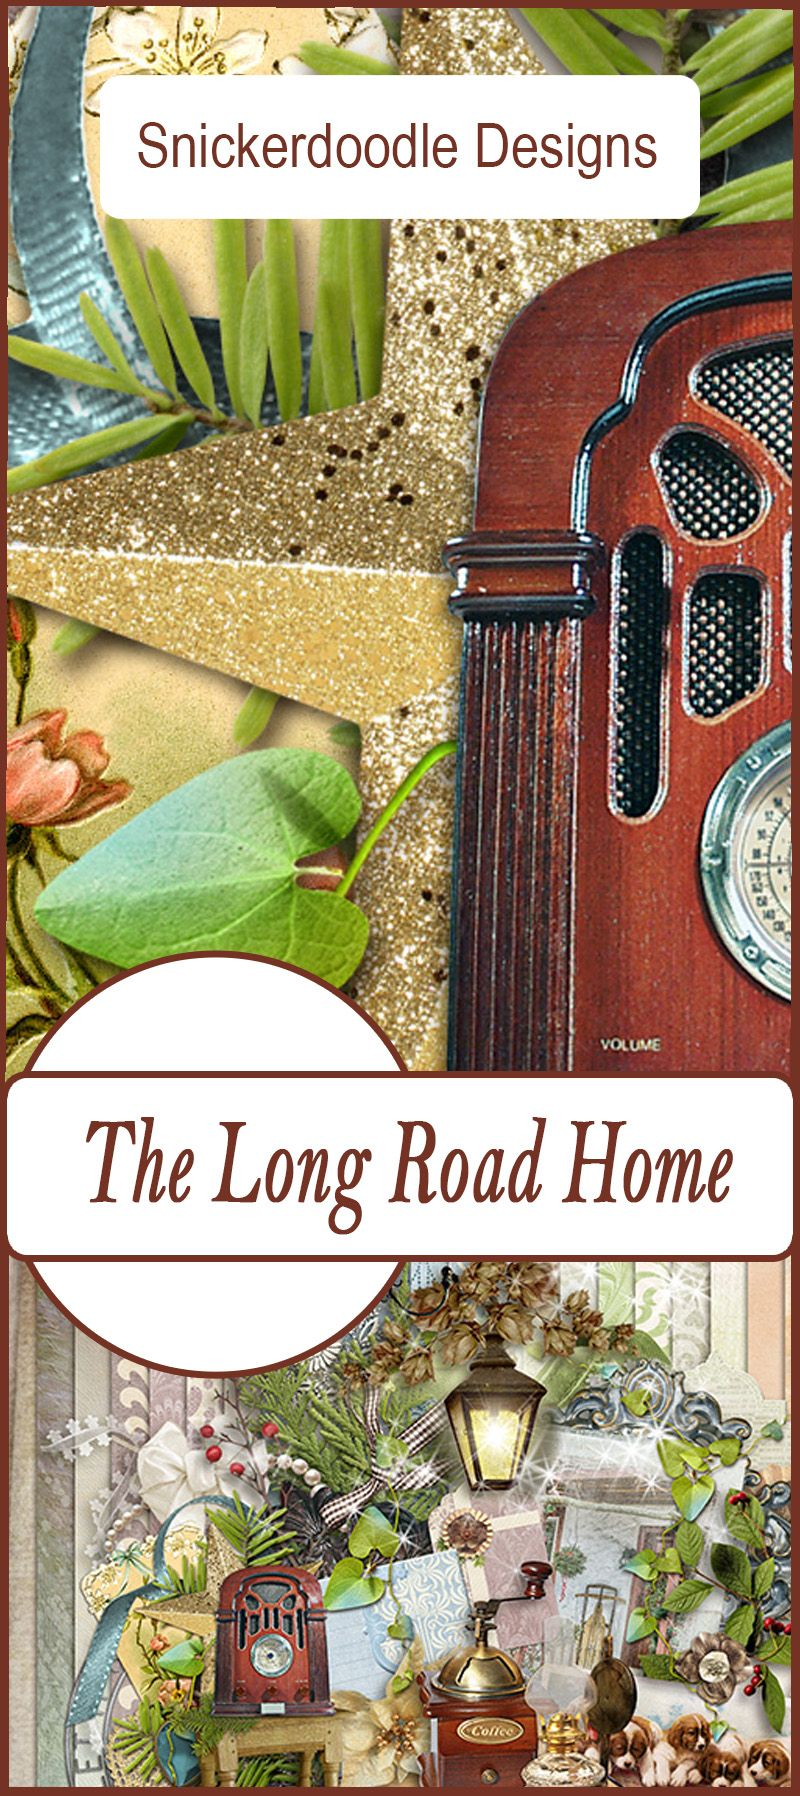 The Long Road Home, a collaboration between SnickerdoodleDesigns and ADB Designs, was designed with everything you need to create beautiful scrapbook pages and document your special memories of home. Full of anticipation, we dream of welcoming lights, a warm cup of coffee, soft music playing on the radio, and puppies jumping at our feet.